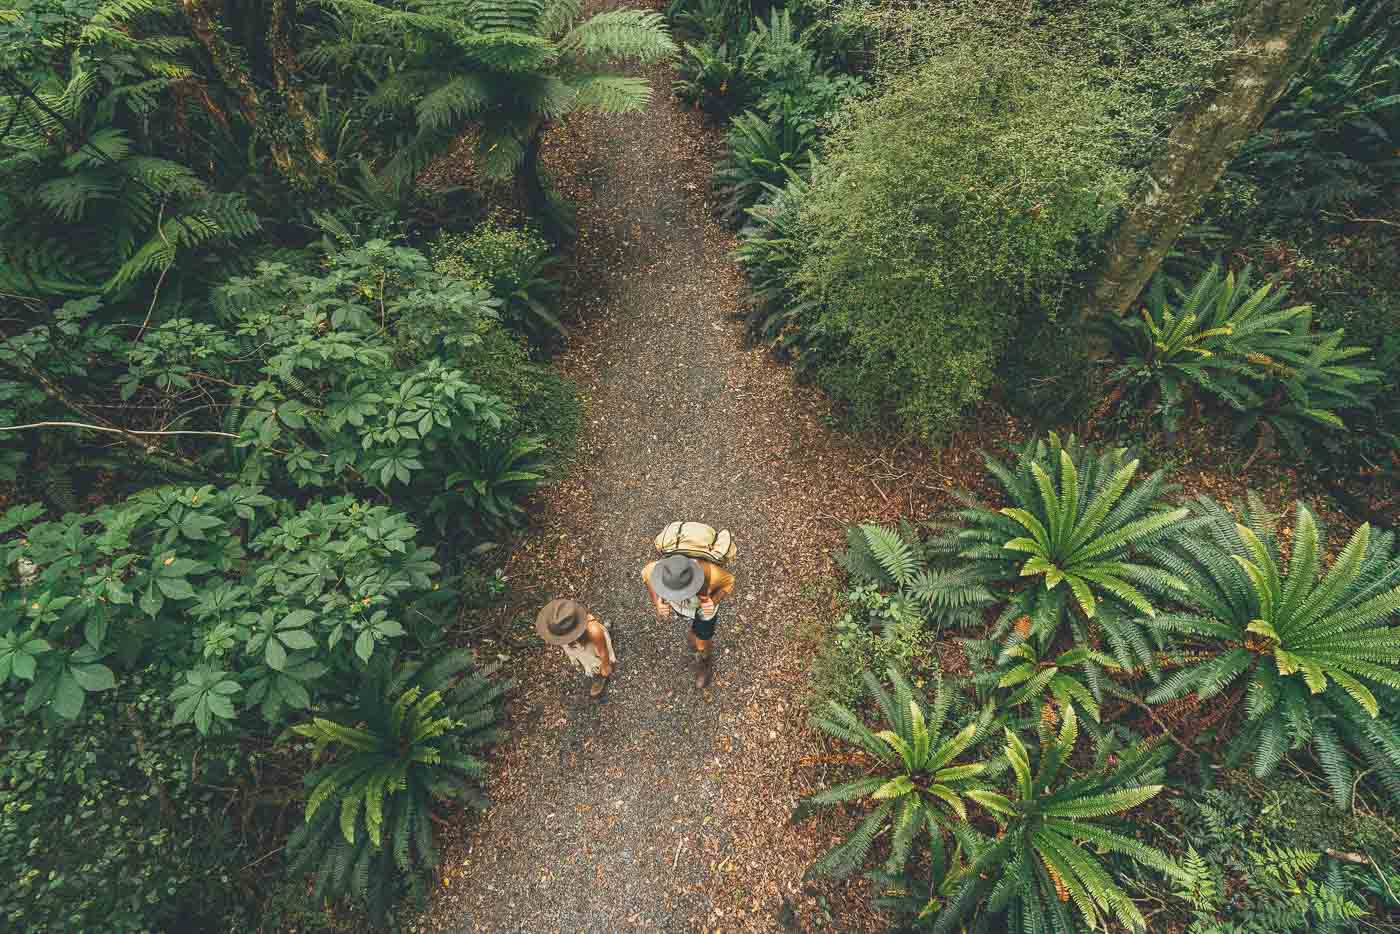 Couple walking through New Zealand's forest